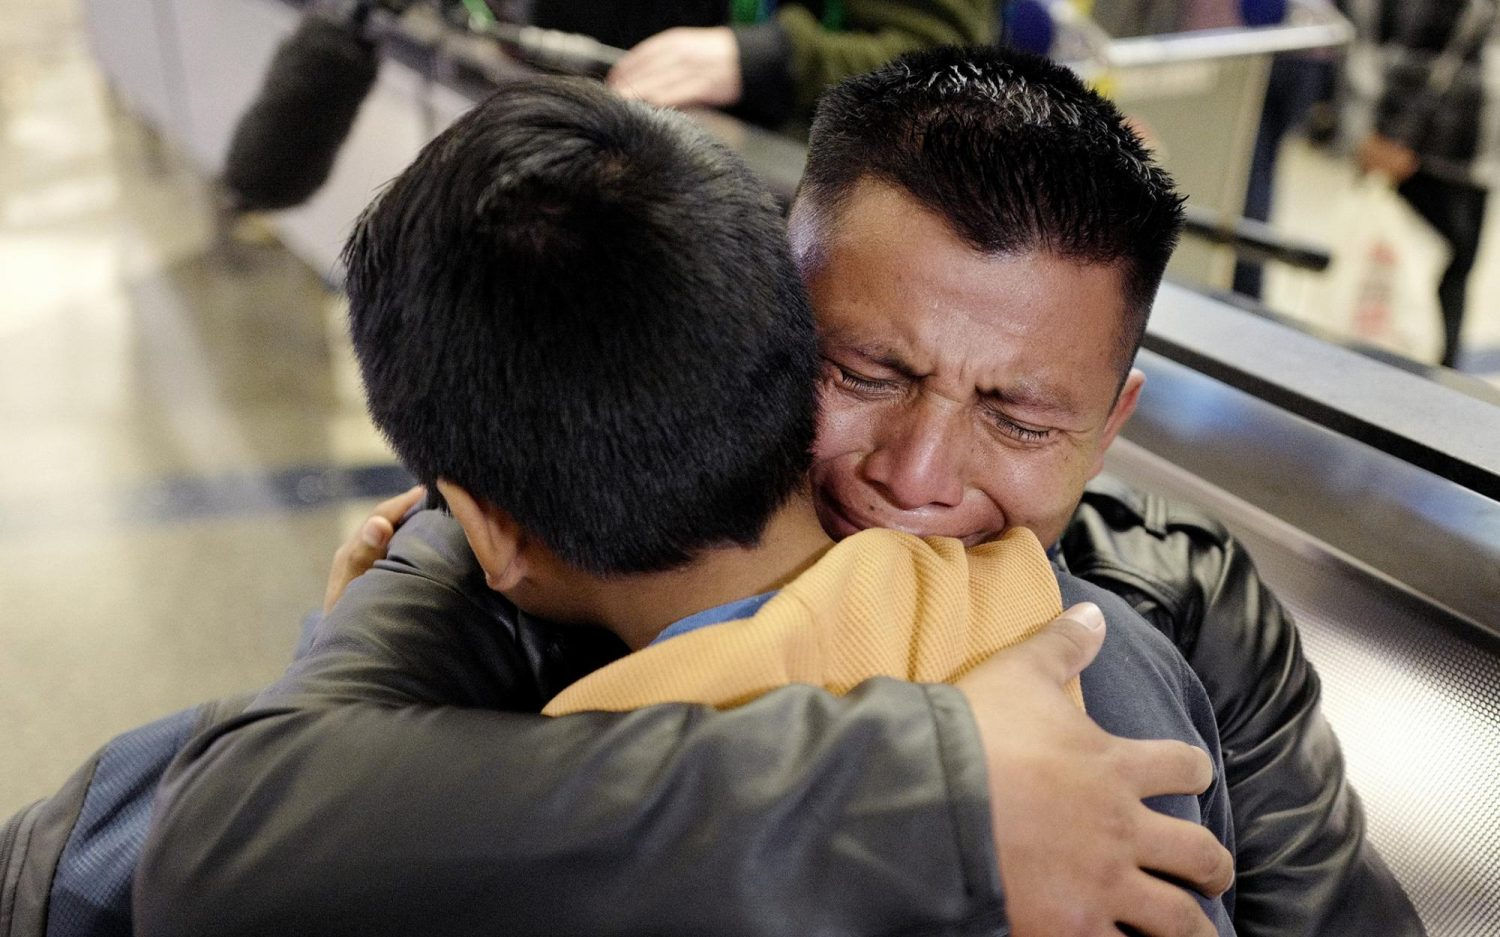 Child separation back in focus after federal personnel changes